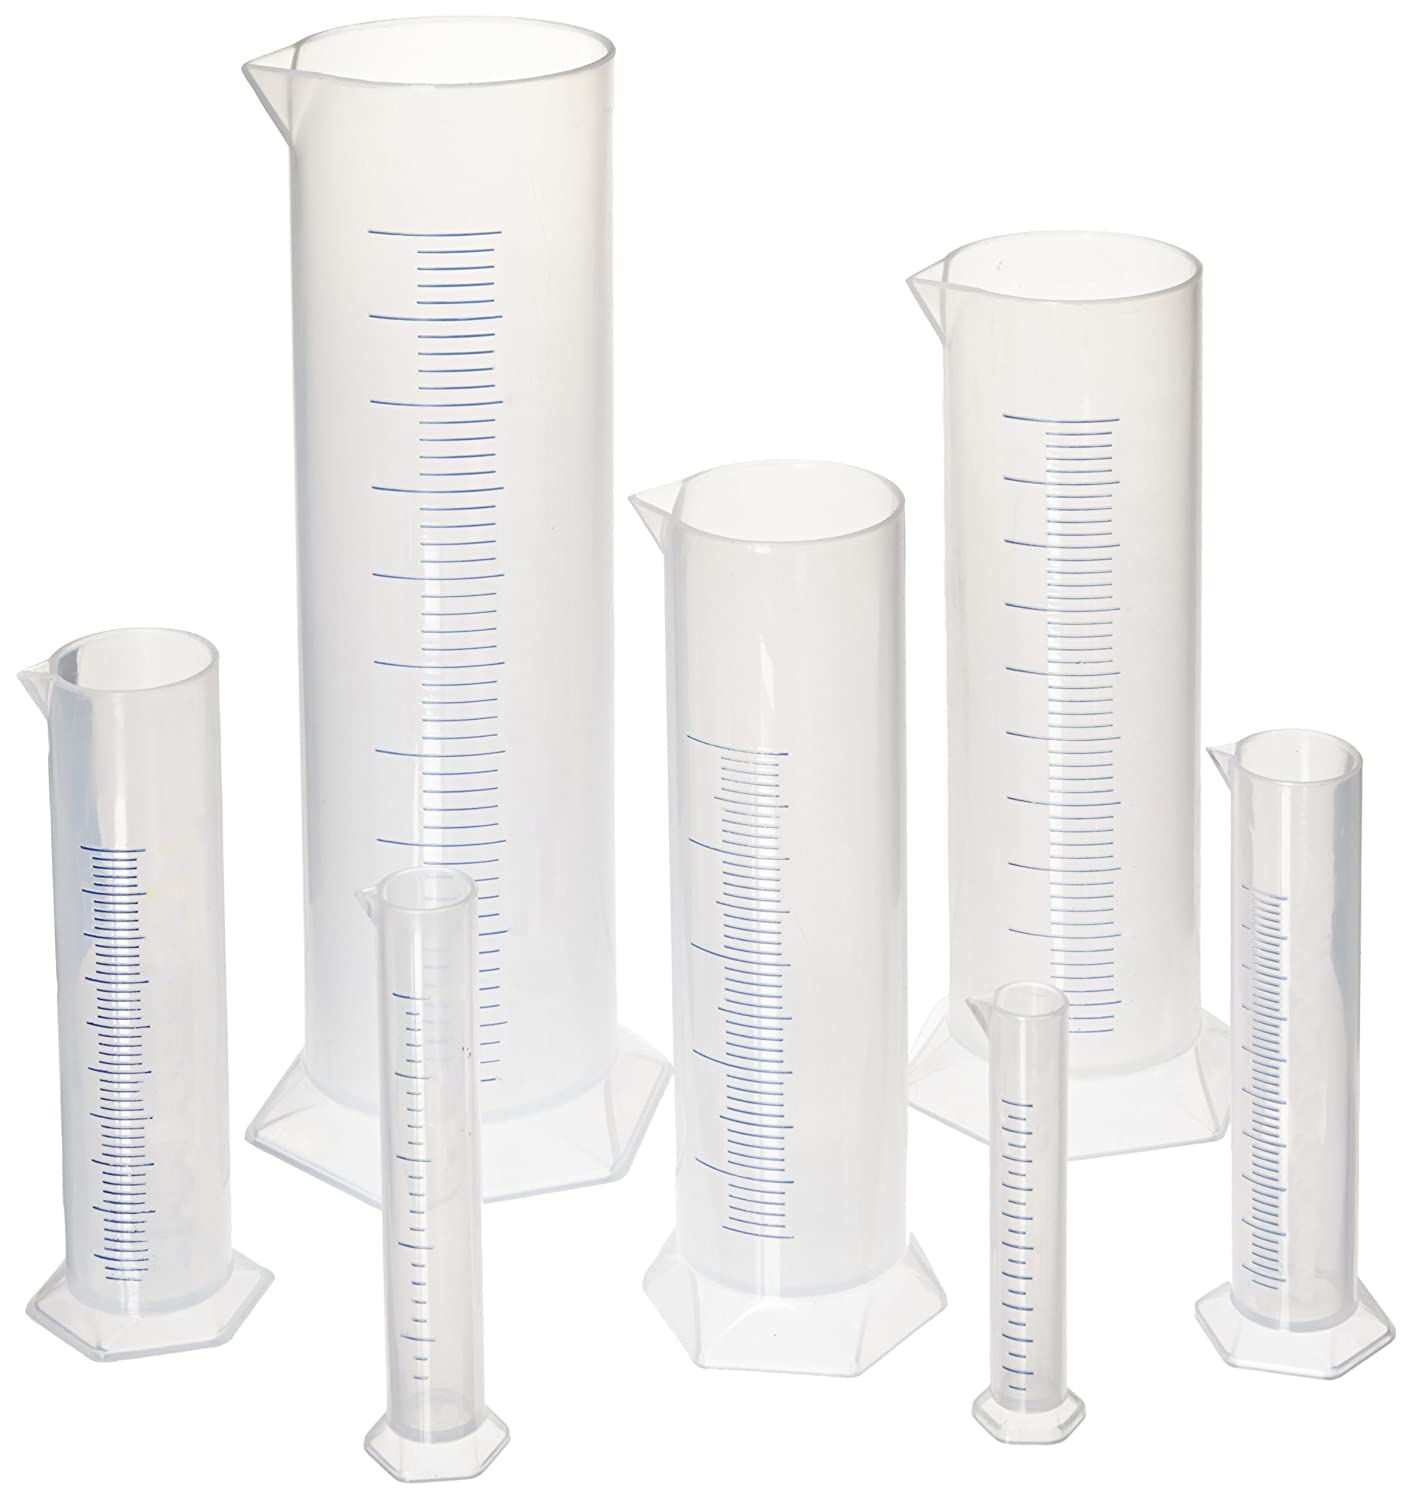 Graduated Measuring Cylinders, Set of 7